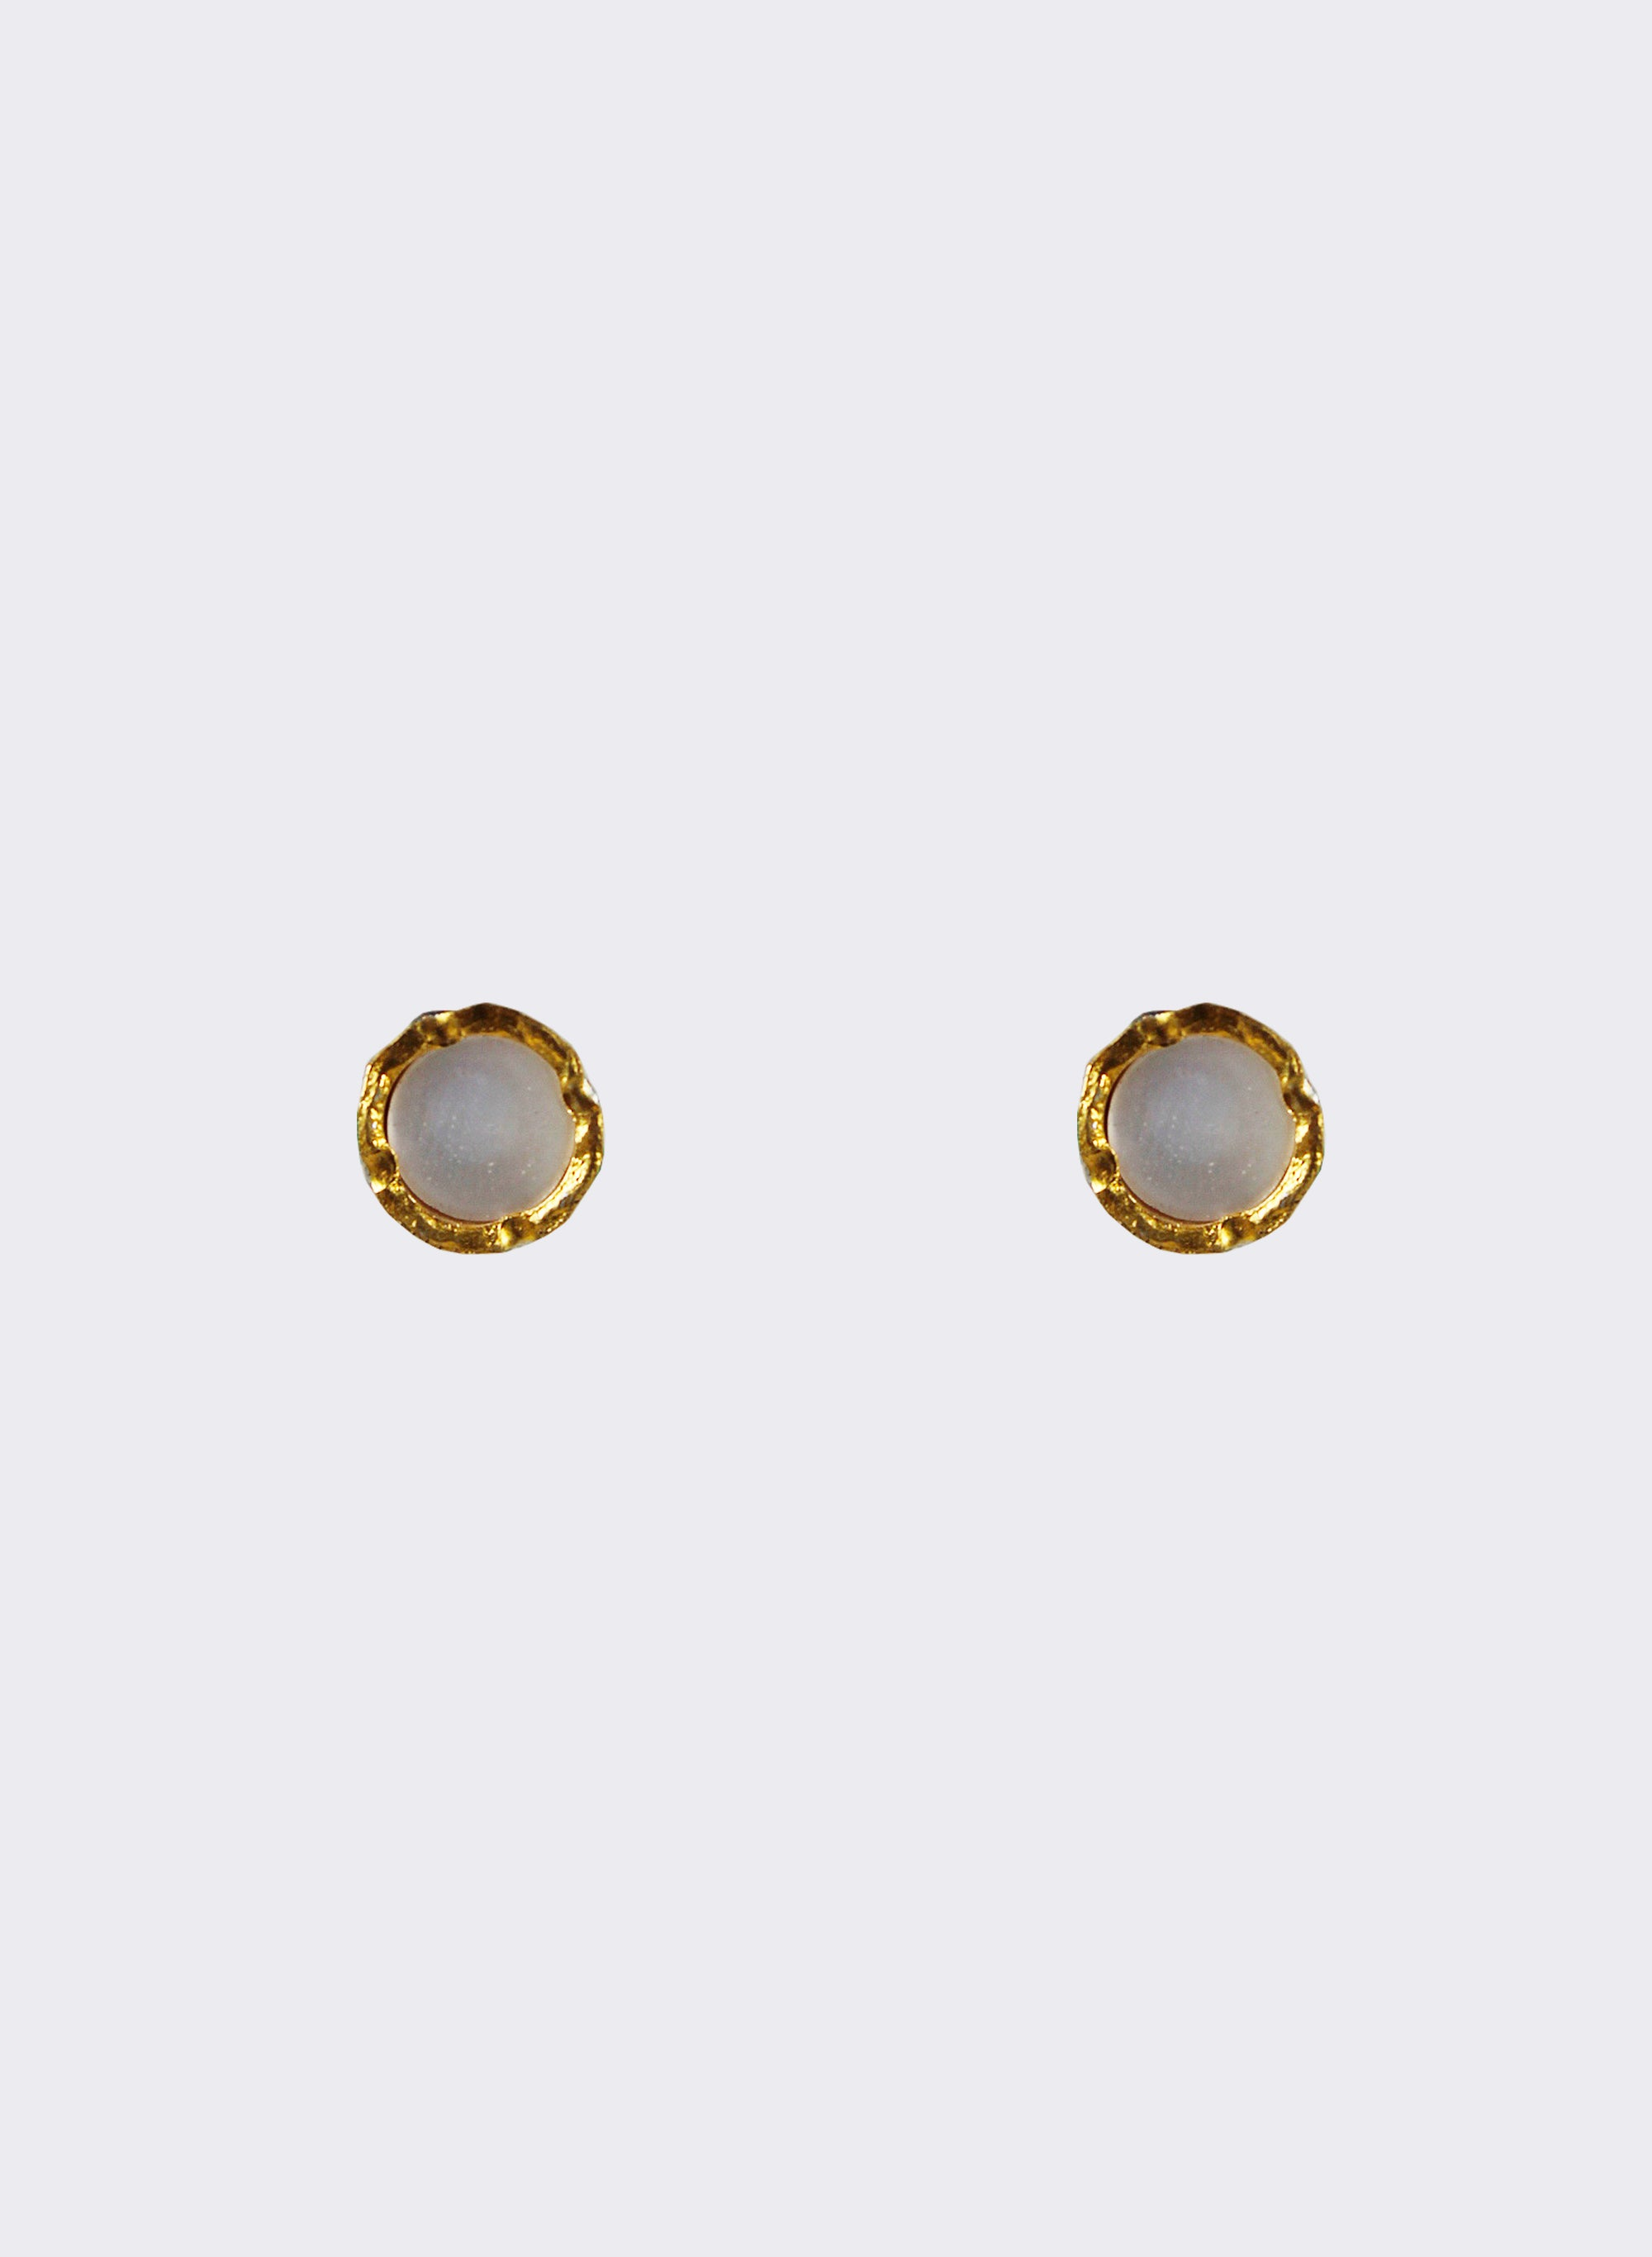 Round Mother Of Pearl Stud Earrings - Gold